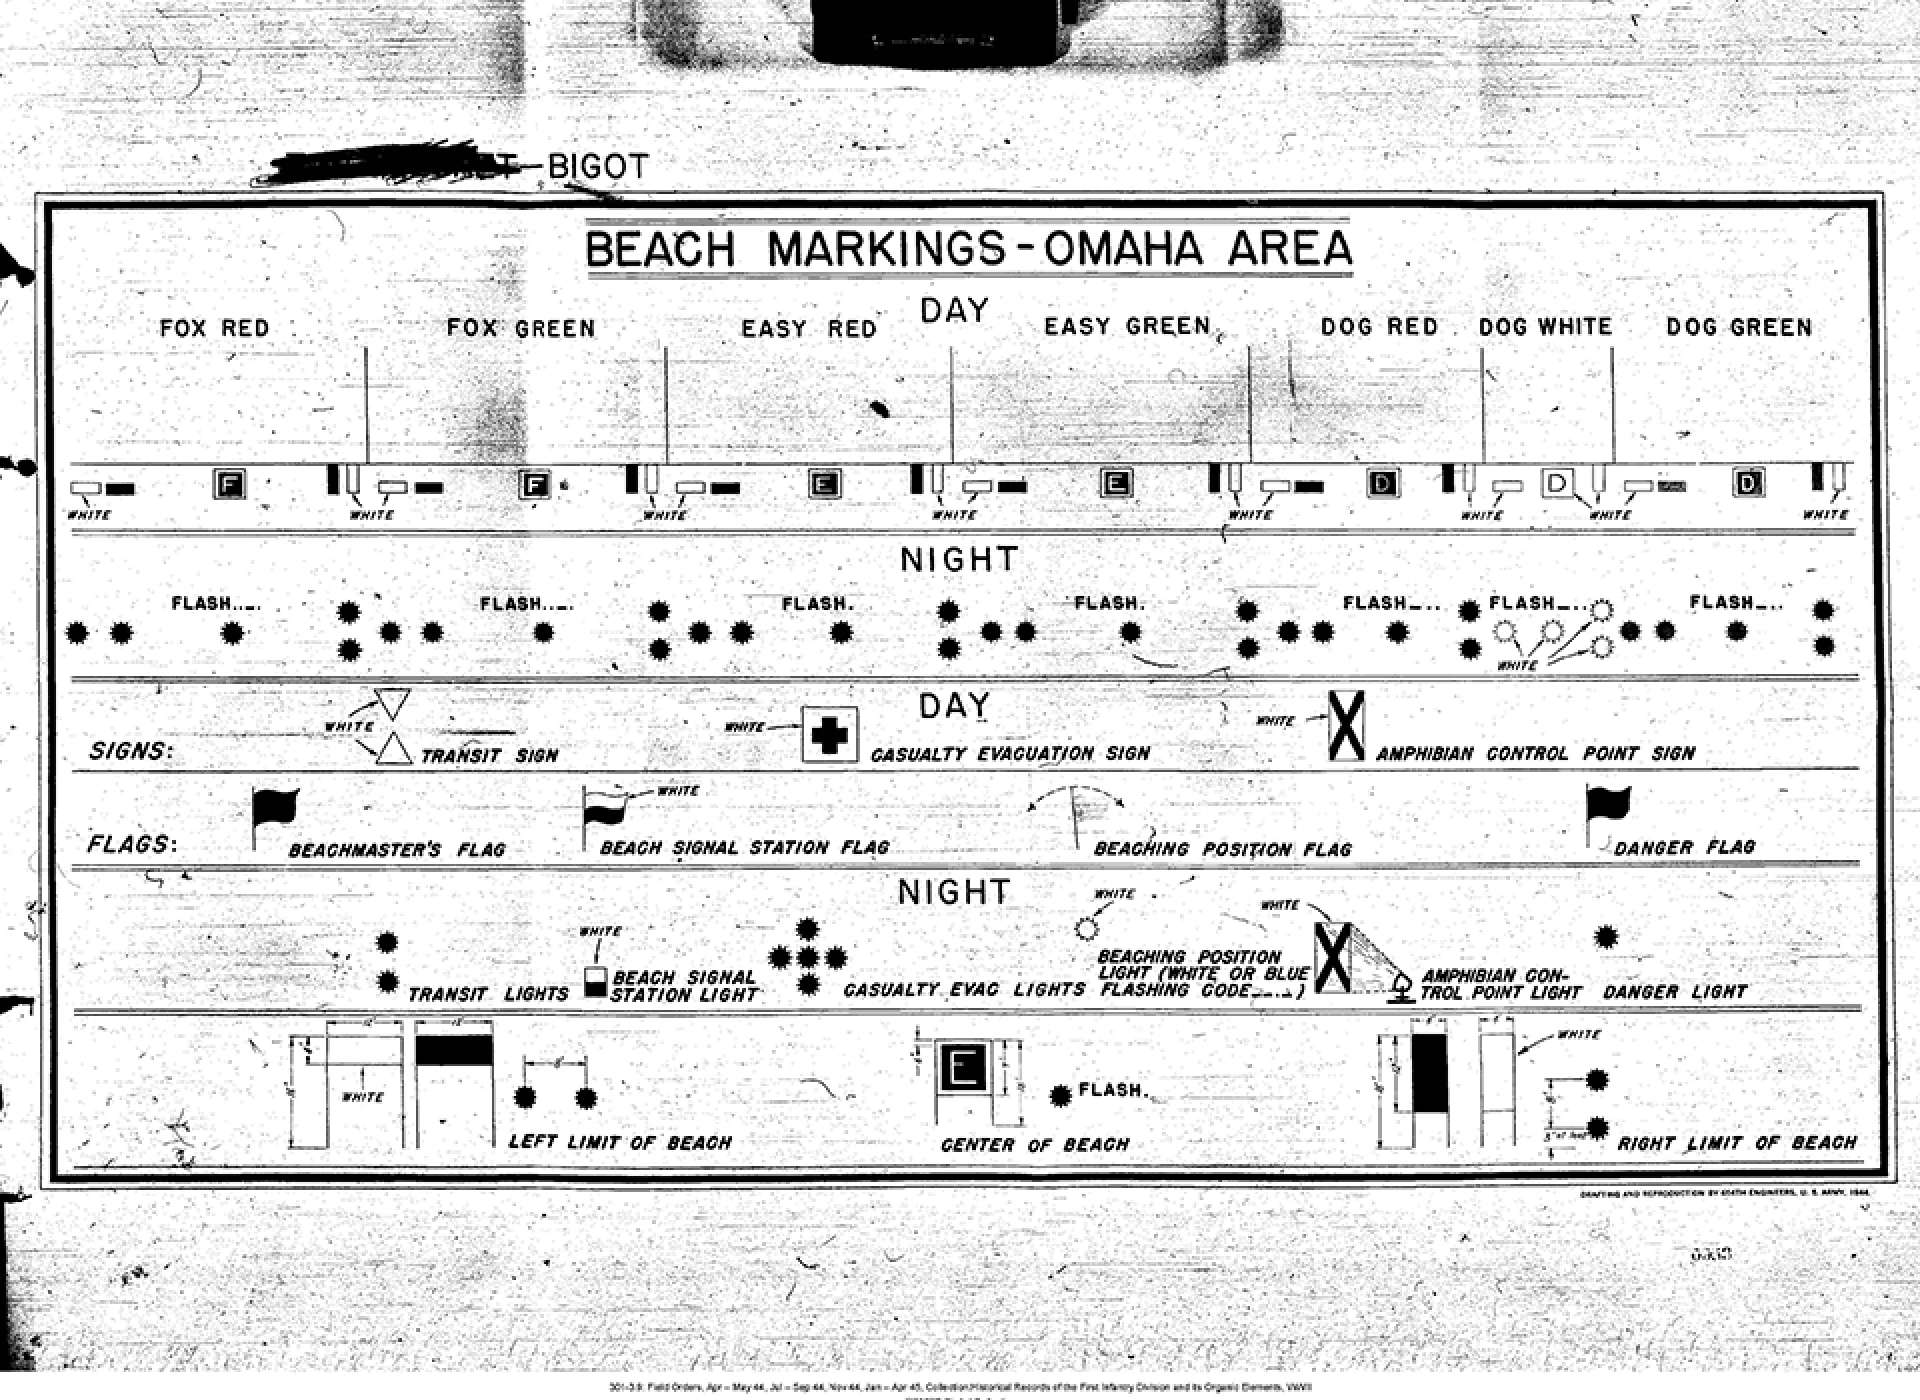 Beach Markings